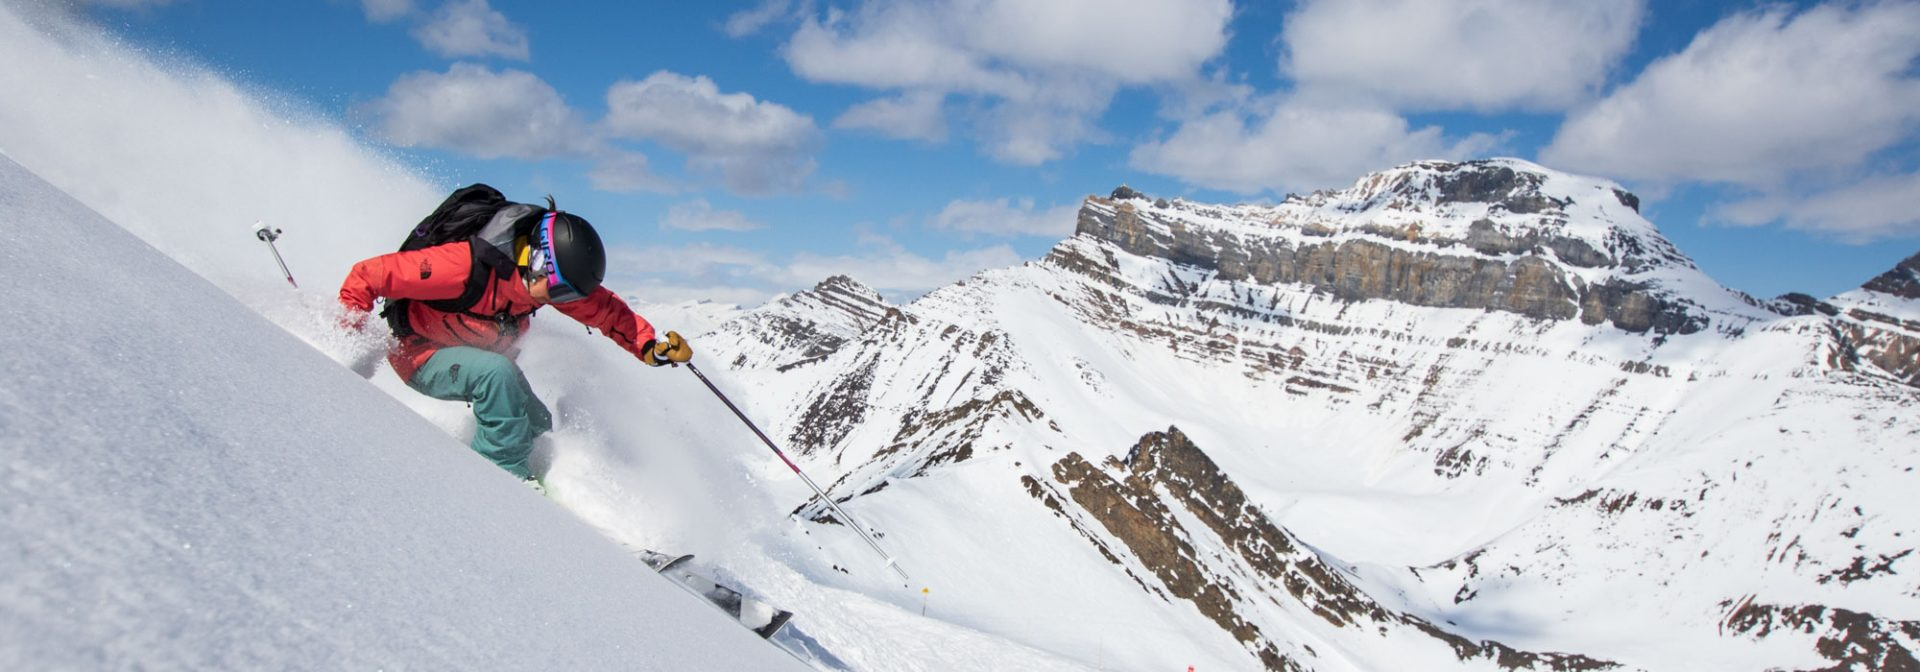 Ingrid Backstrom skiing at Lake Louise Ski Resort, Banff National Park. Photo by Liam Doran.